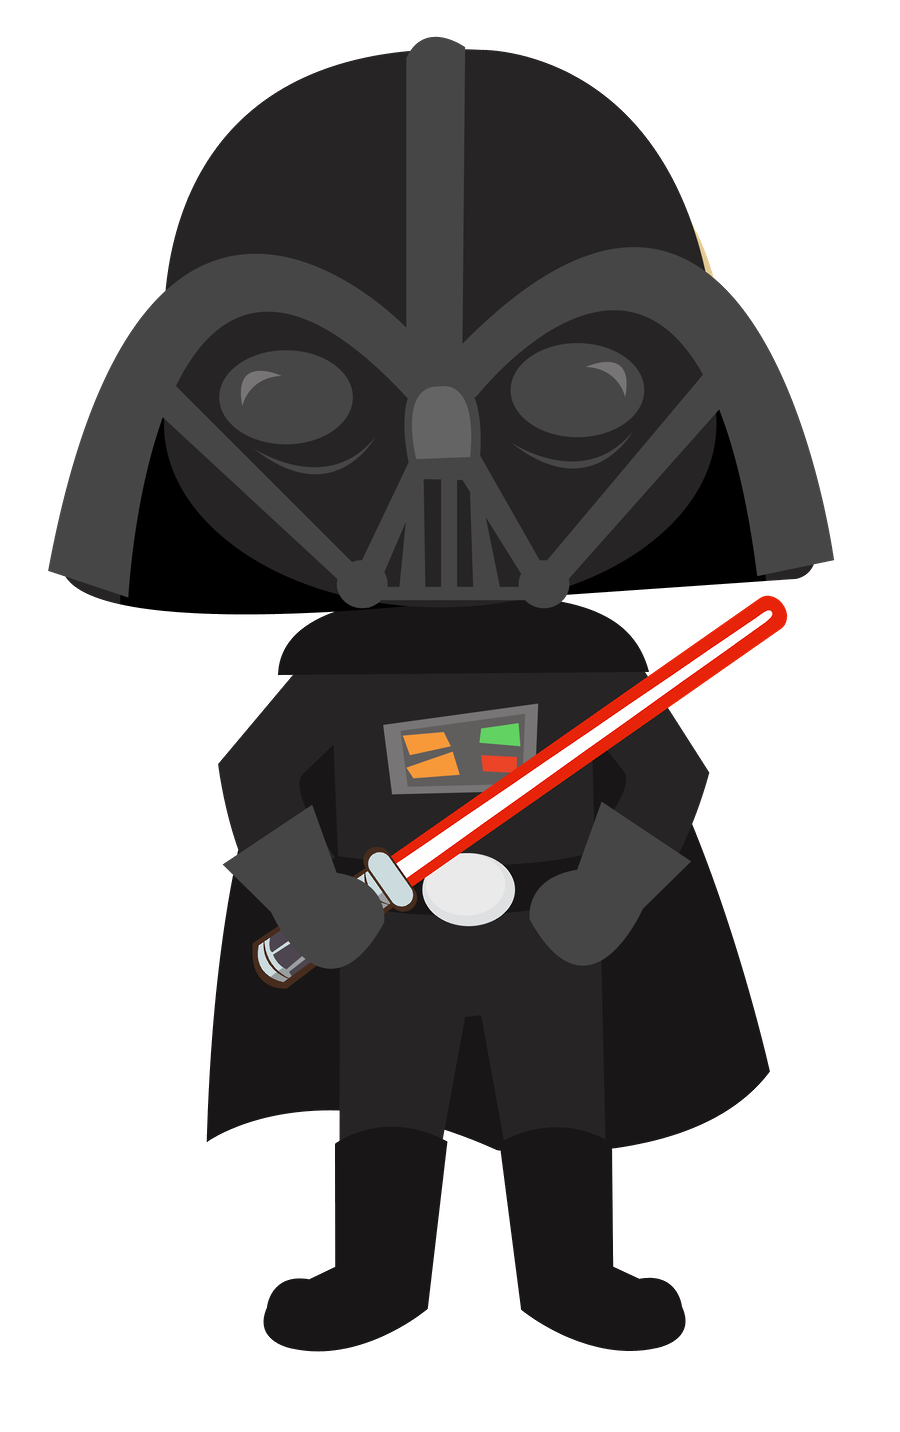 Star wars minus felt. Darth vader clipart step by step graphic royalty free download